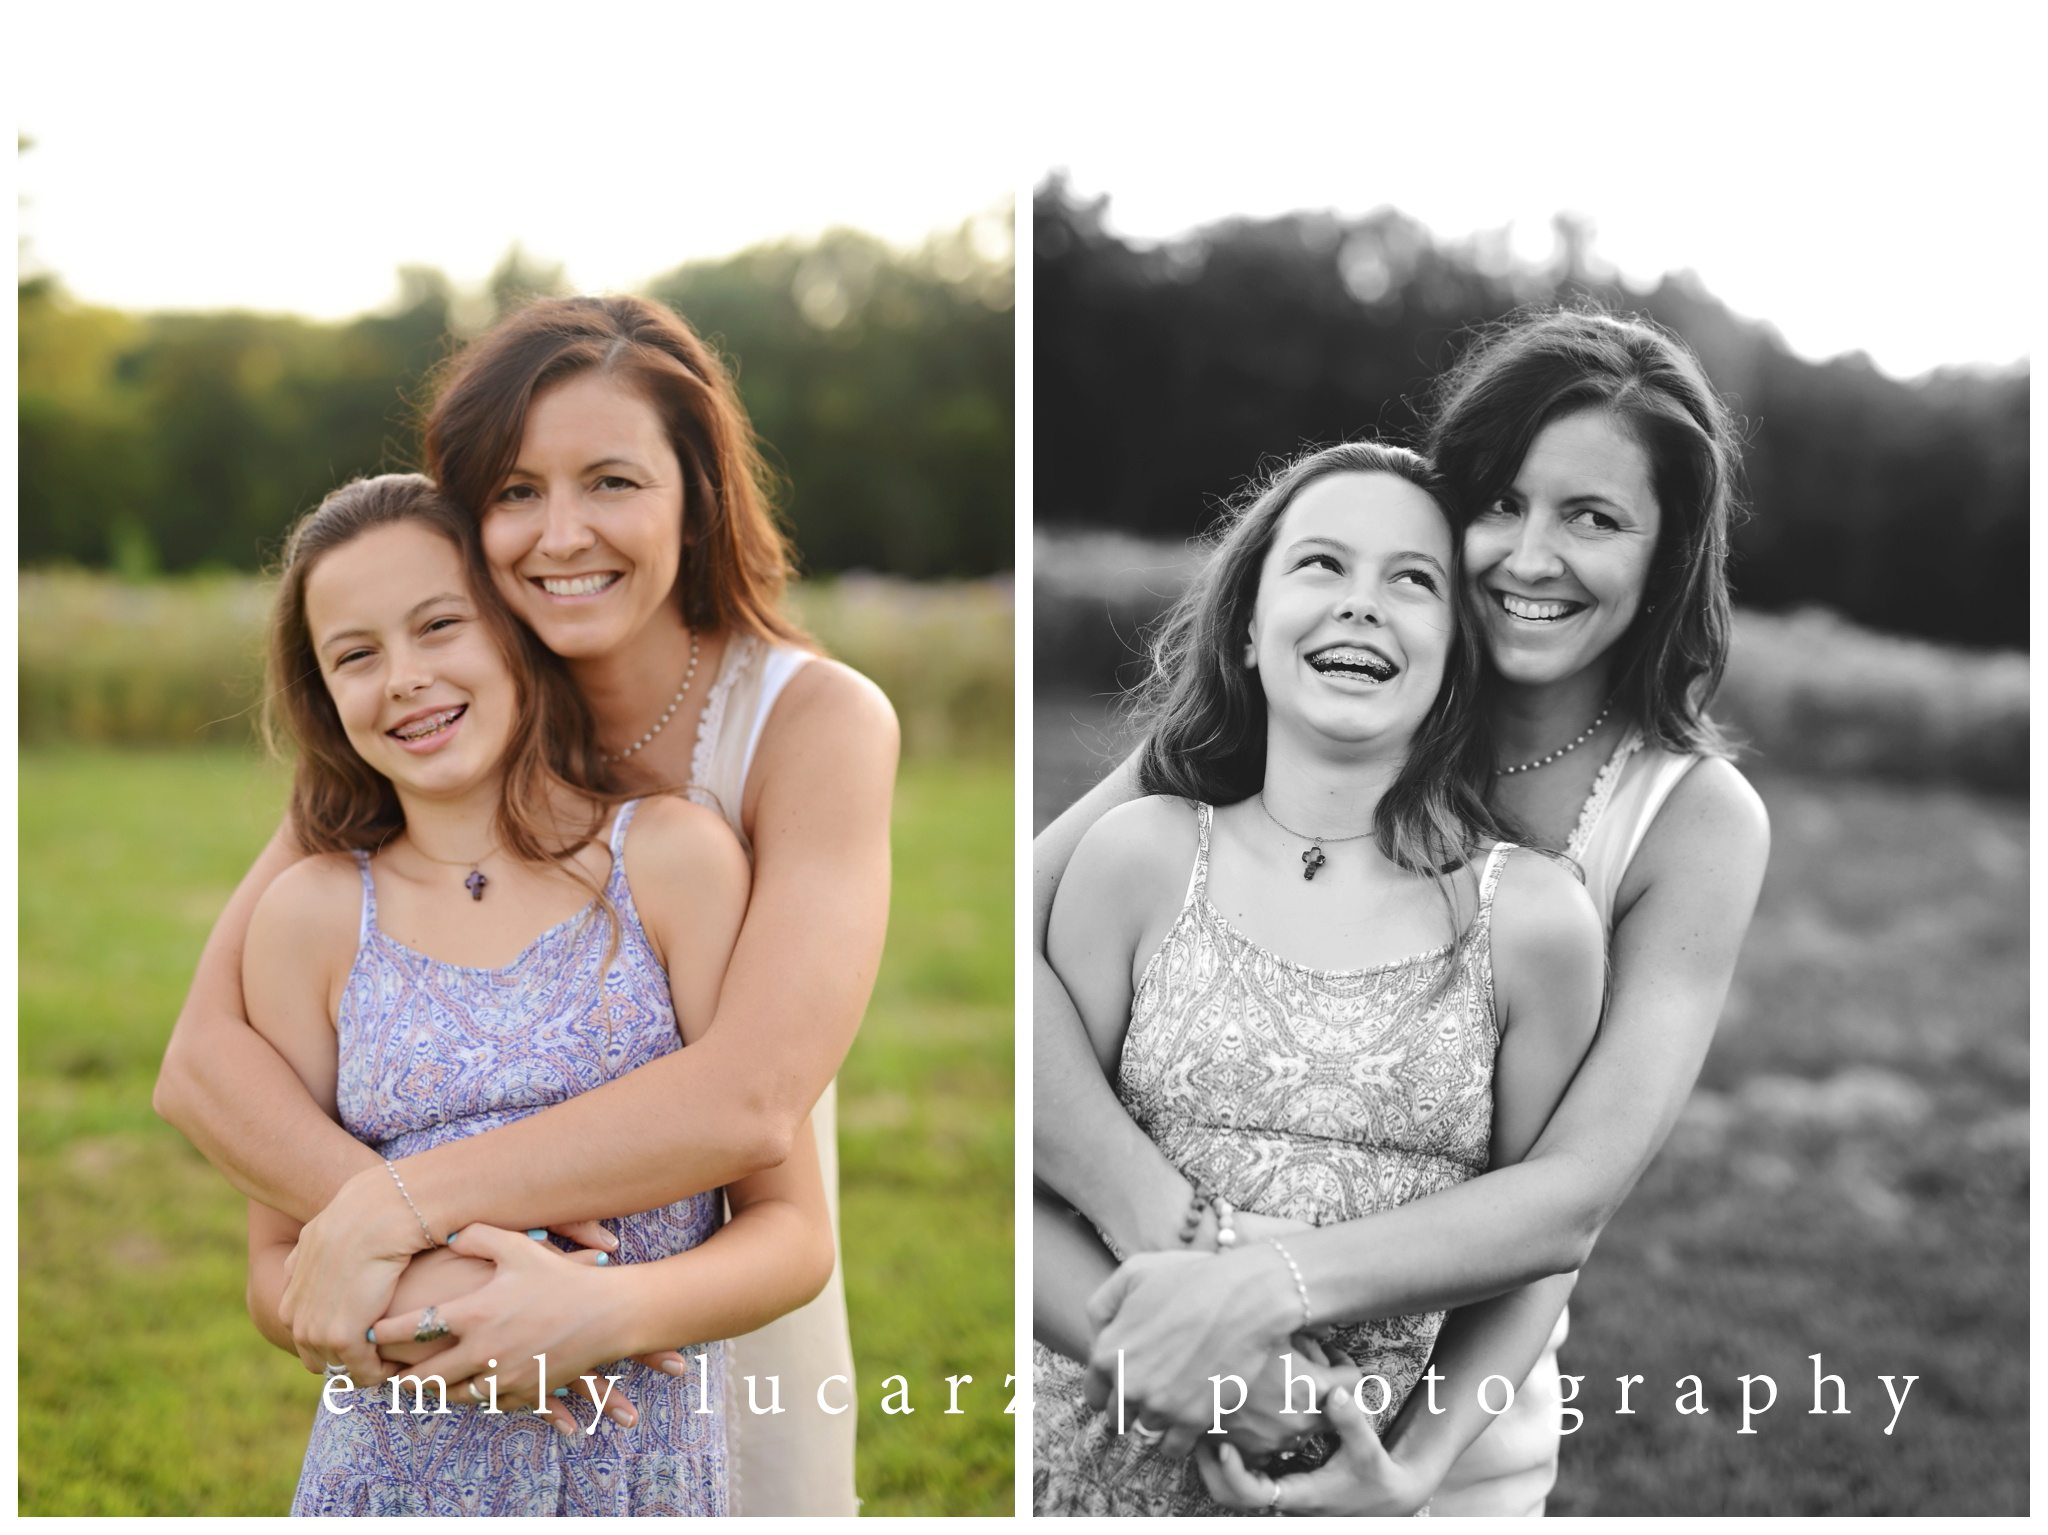 St. Louis family photography ideas